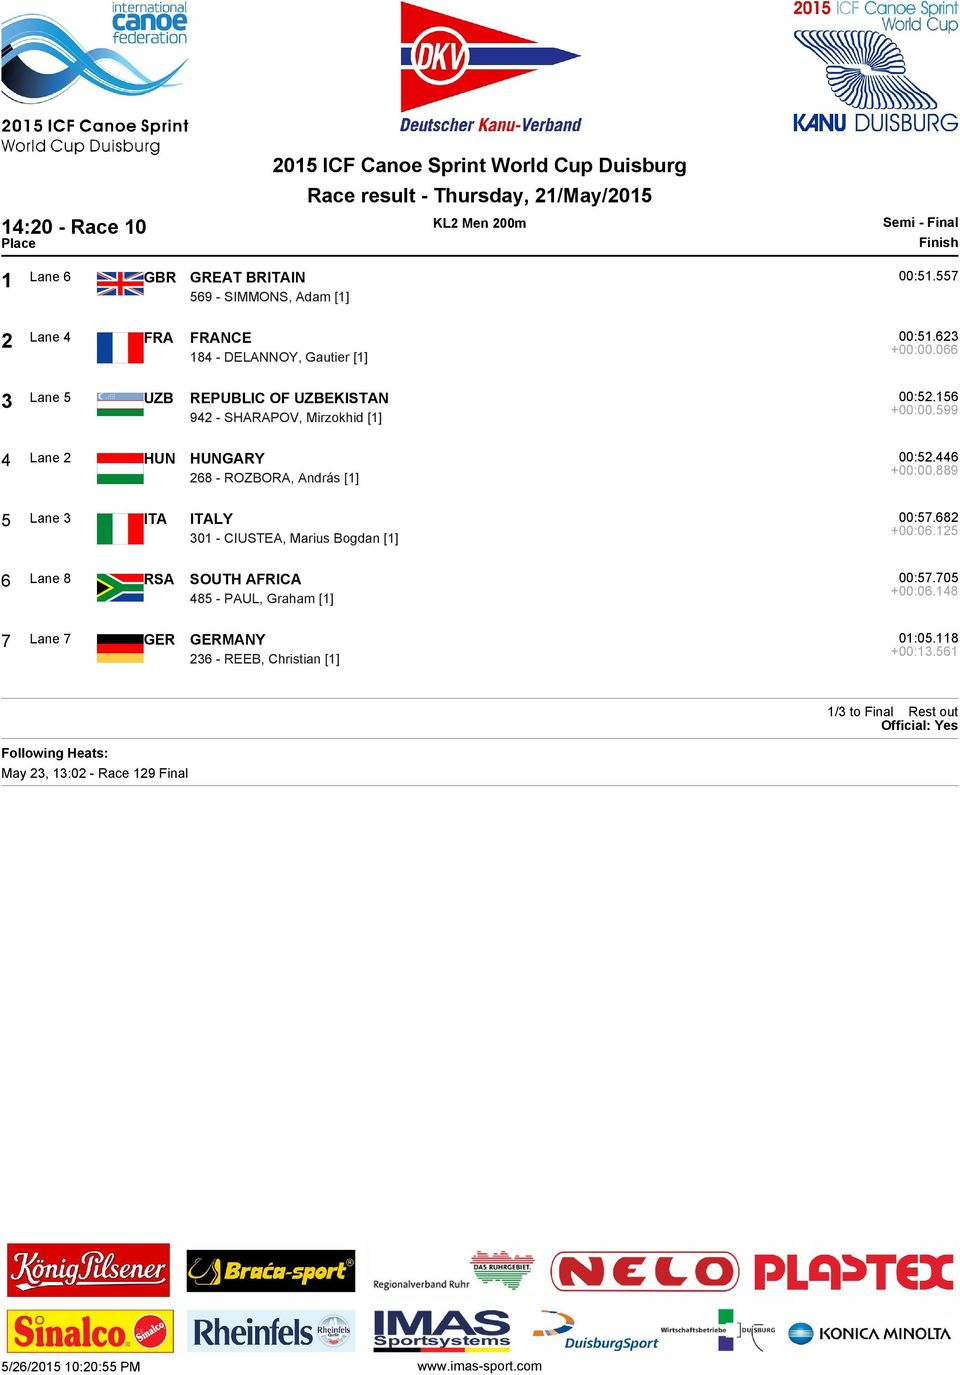 6 +00:00.889 Lane ITA ITALY 0 - CIUSTEA, Marius Bogdan [] 00:7.68 +00:06. 6 Lane 8 RSA SOUTH AFRICA 8 - PAUL, Graham [] 00:7.